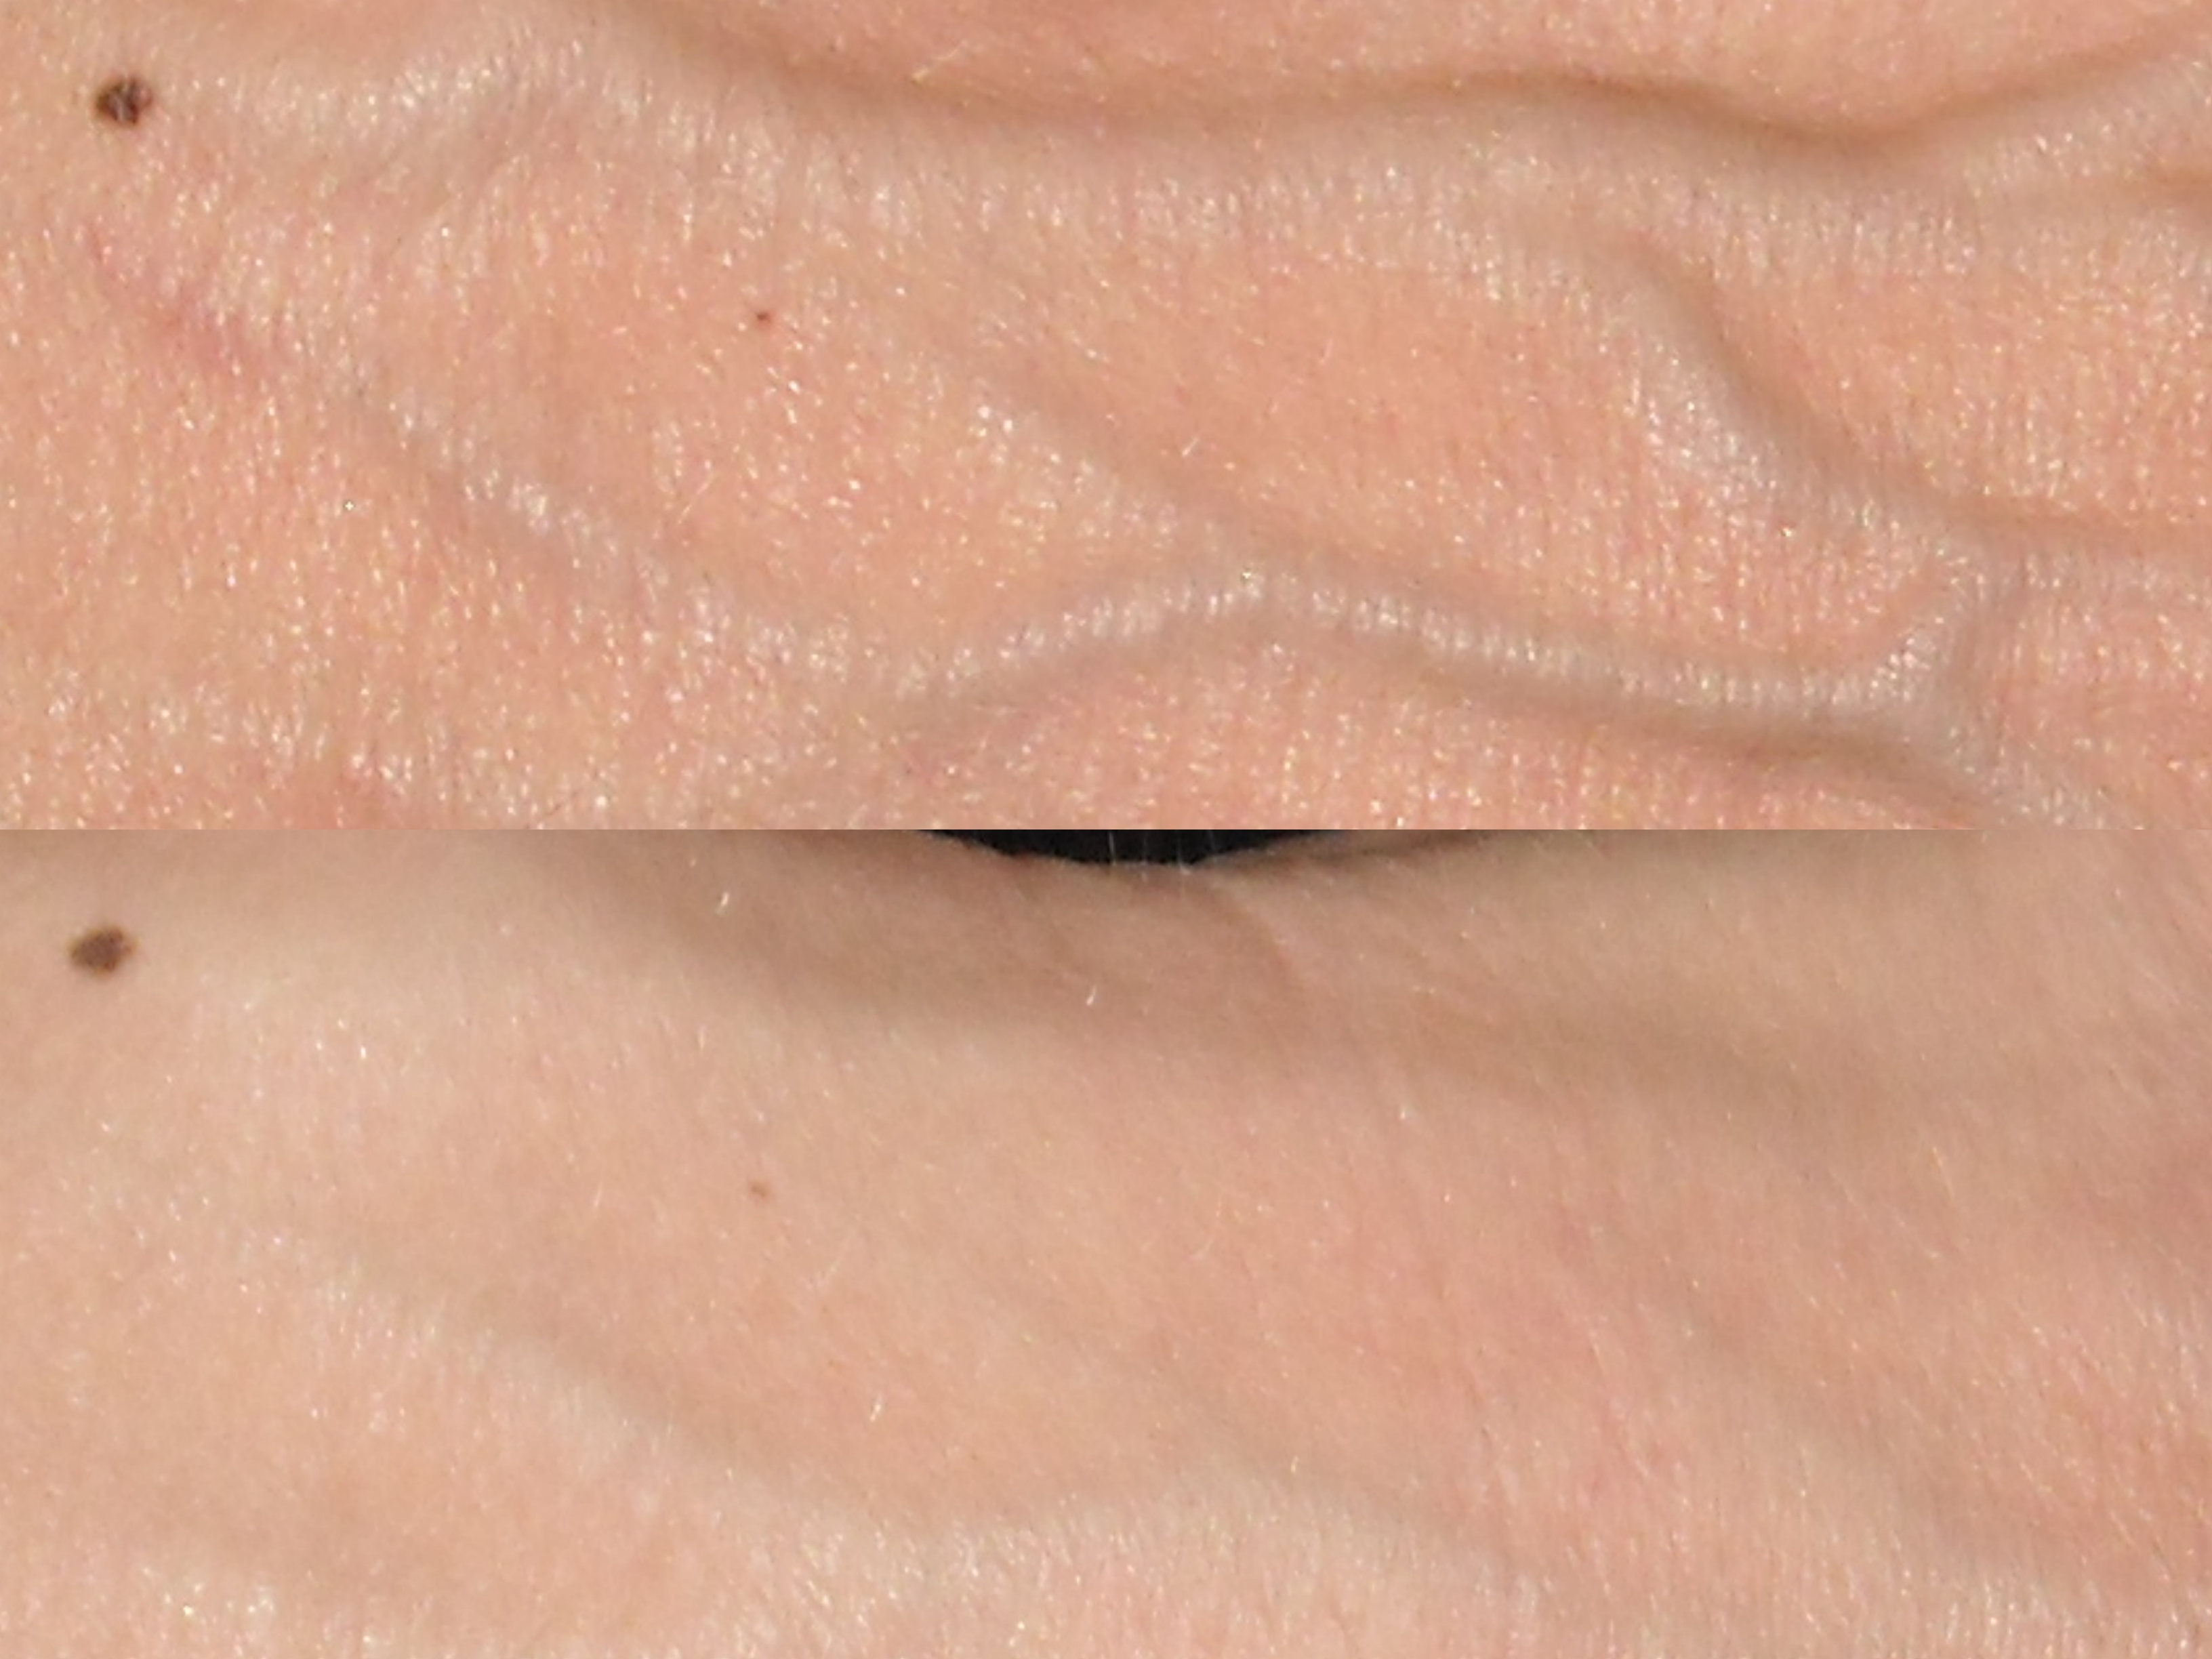 Top shows the back of the hand before fat transfer. Bottom shows the